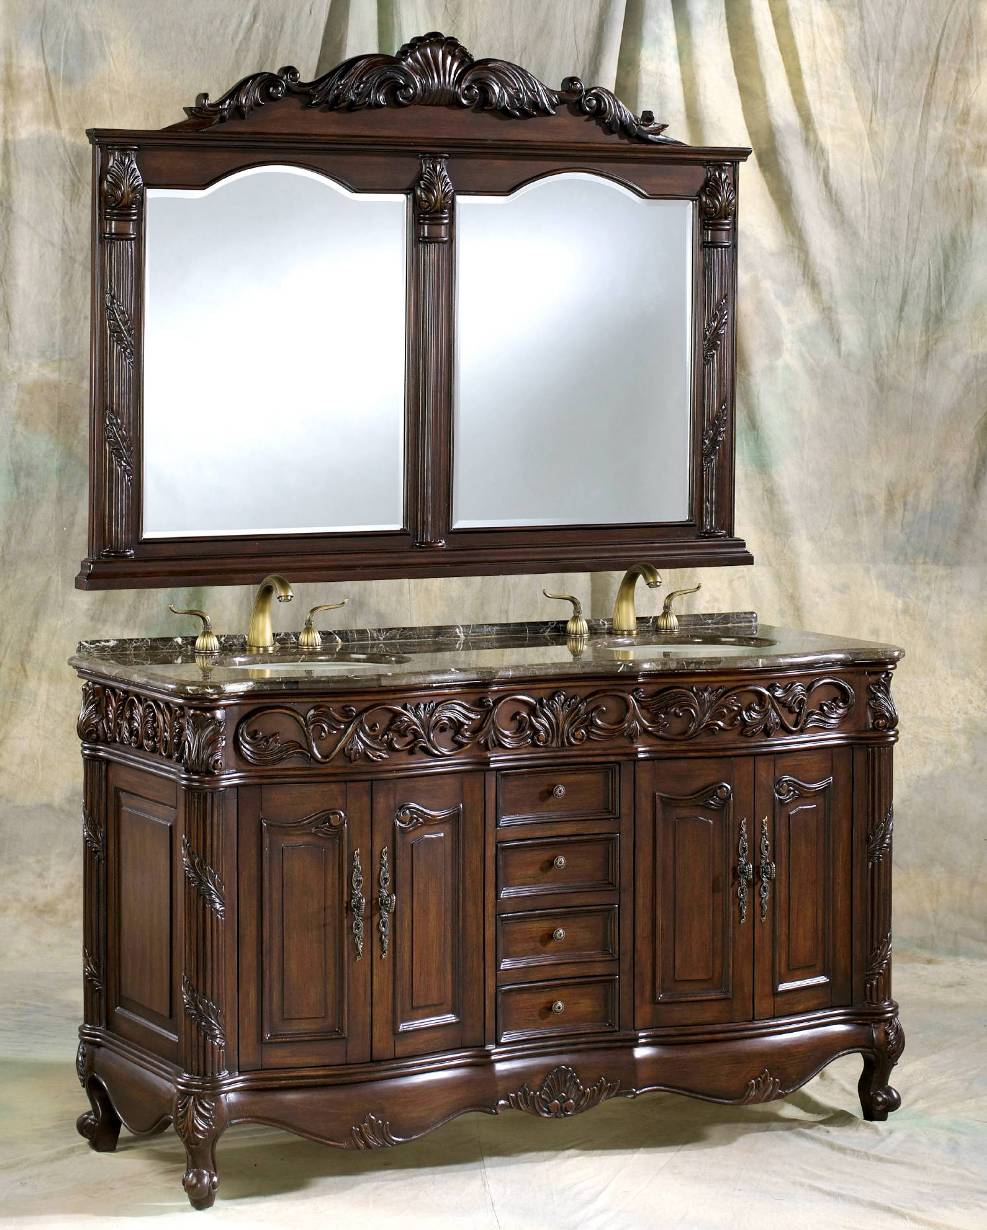 Bertch Cabinets Complaints Kitchenlav Double Bathroom Vanity Single Bathroom Vanity